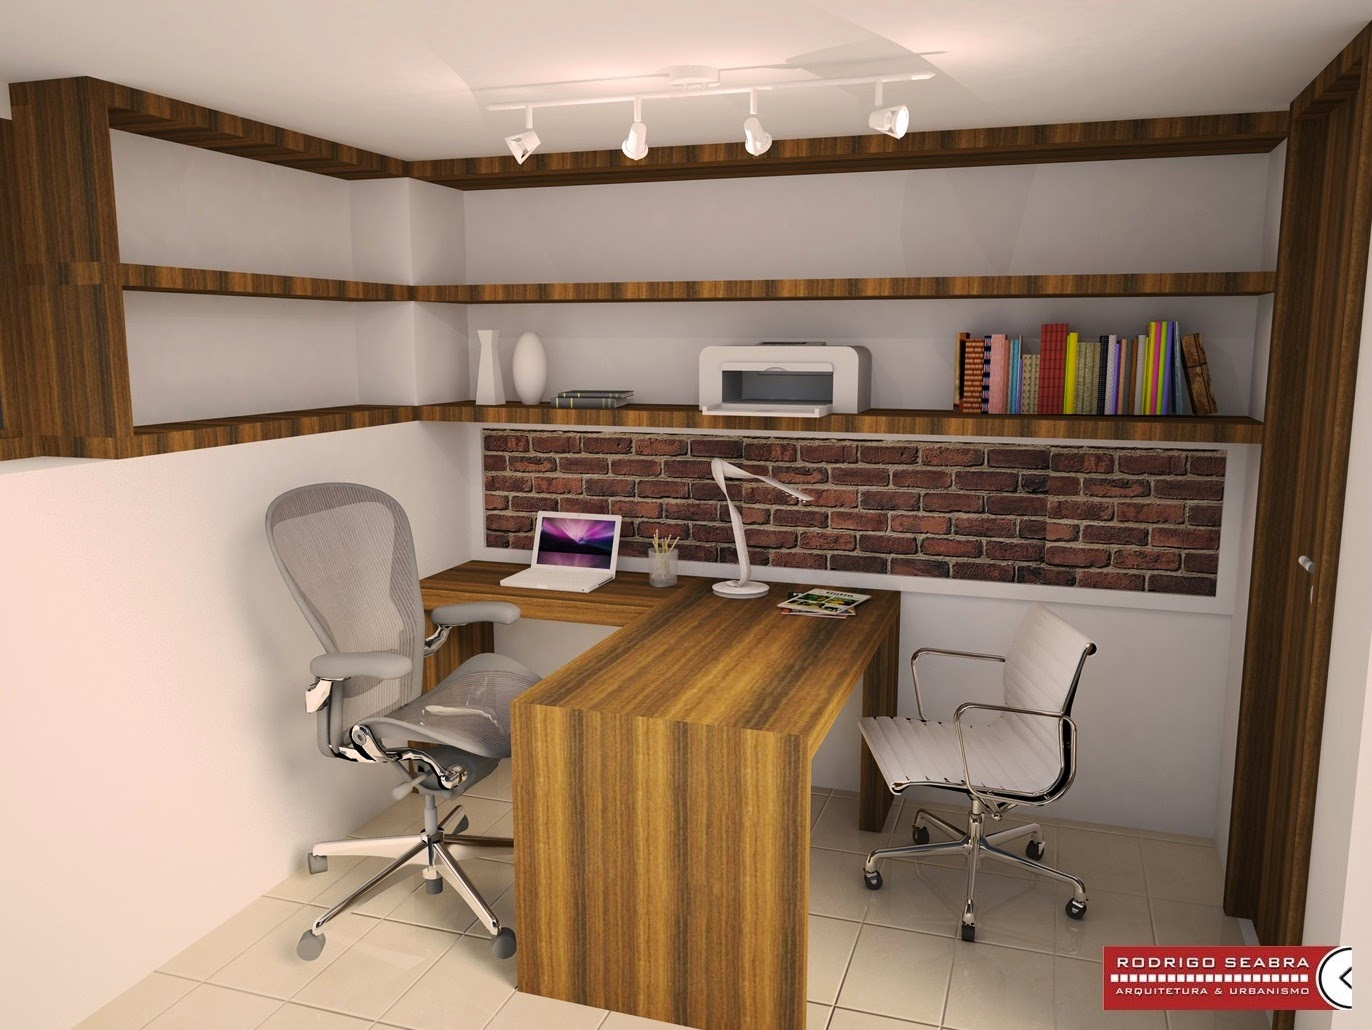 Decorating Ideas for Home Office with No Windows